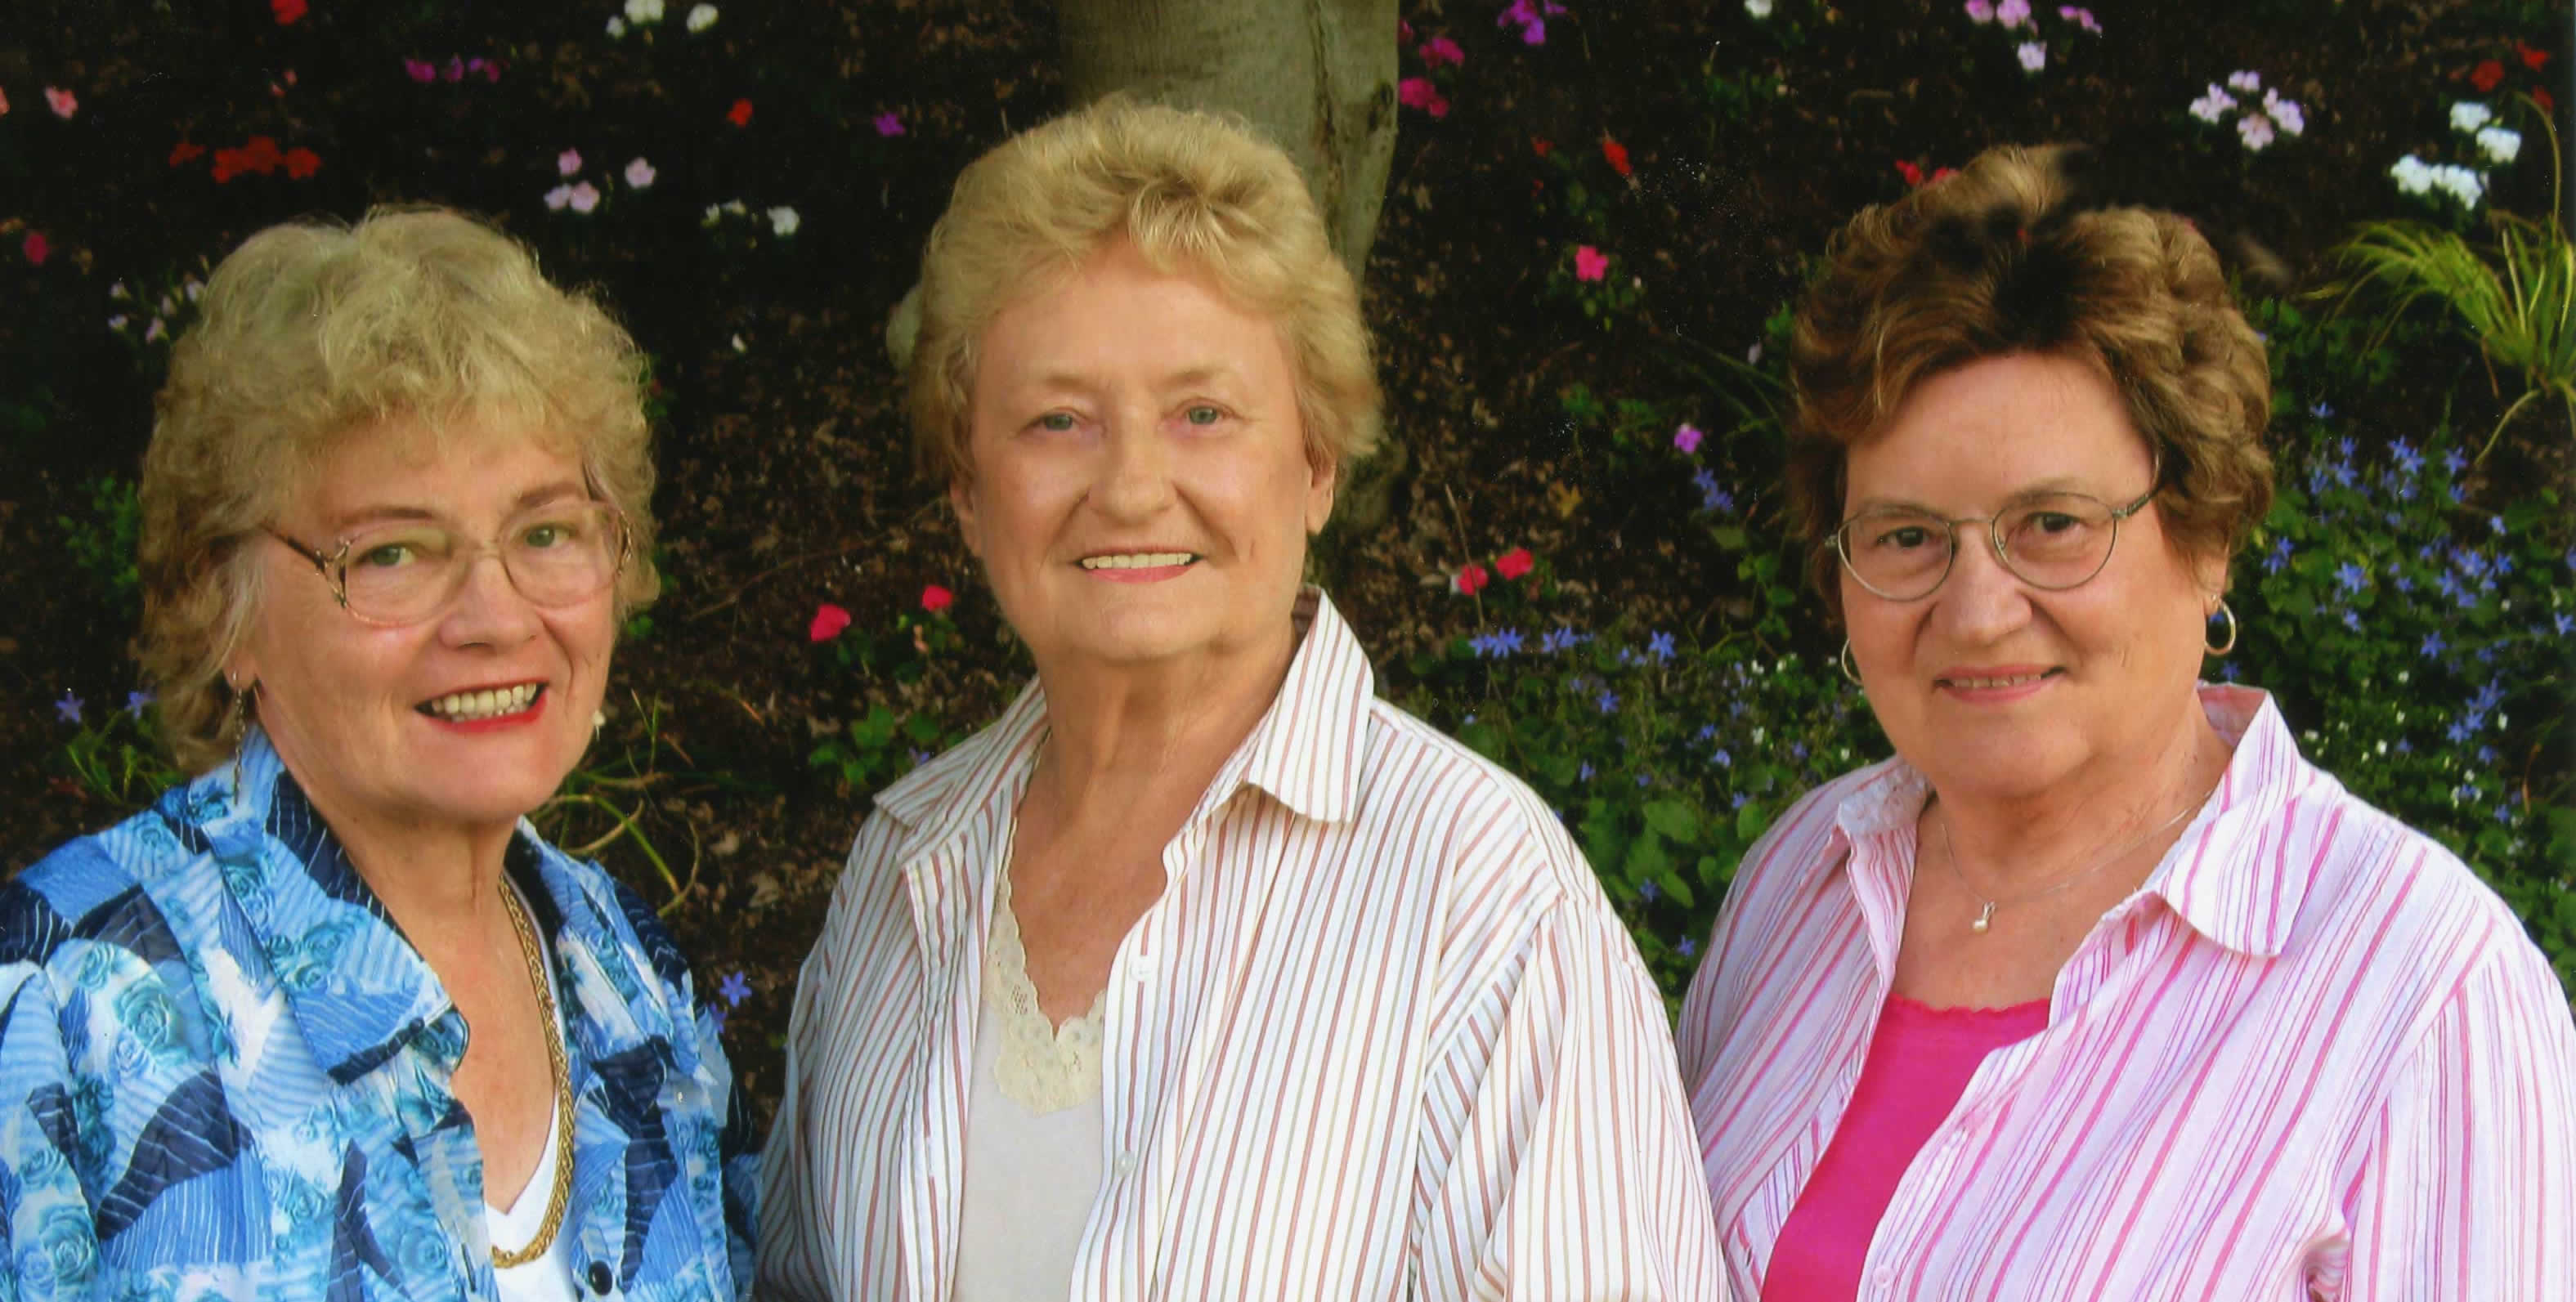 Image of Anne Krickel, Jeanie Thiessen and Francie Berg